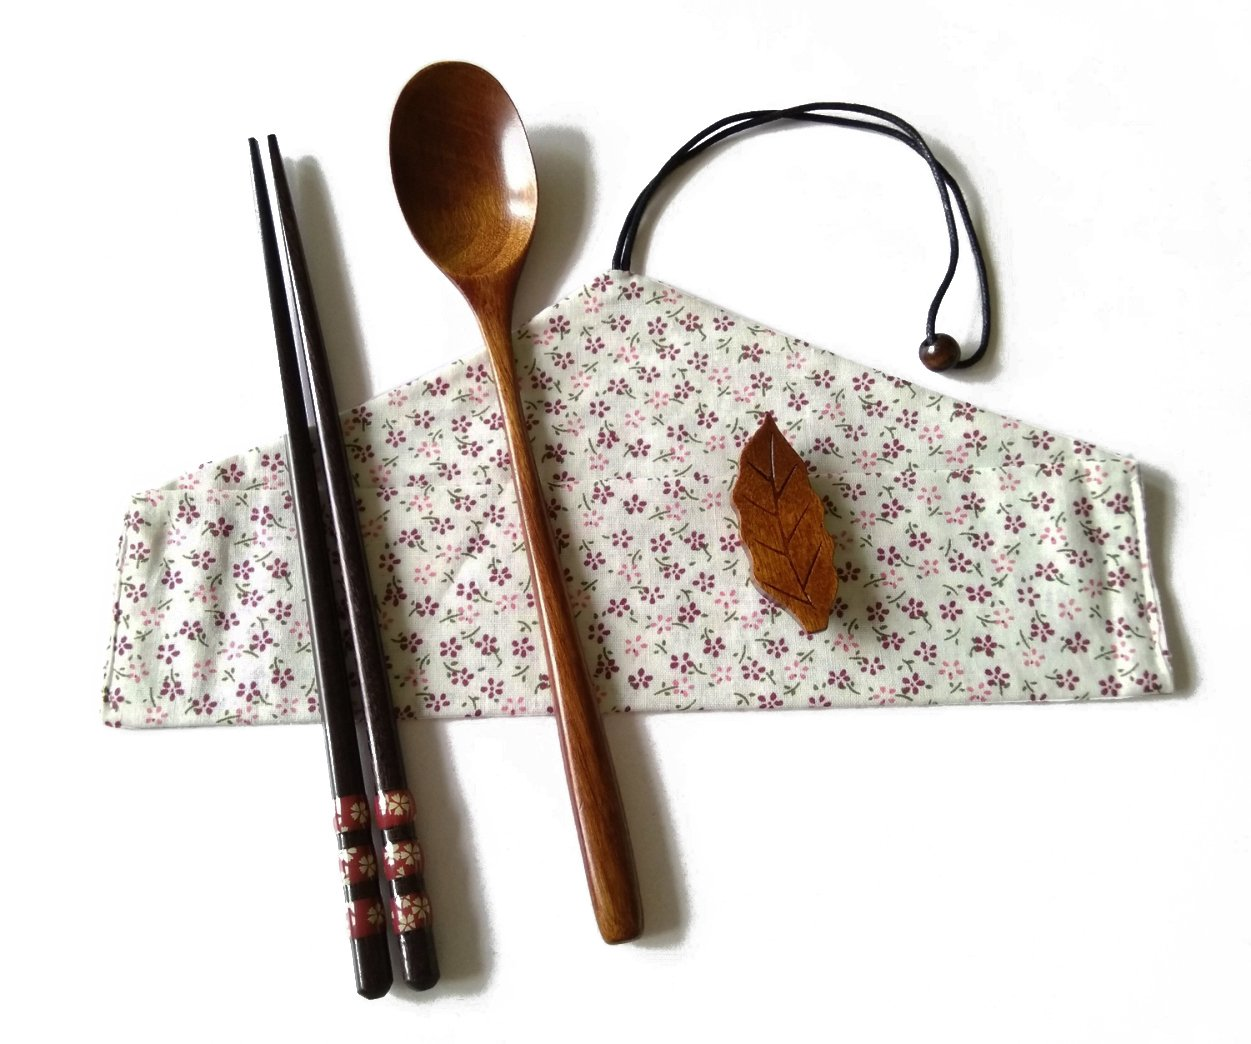 Linshing Natural Wooden Tableware Set for Lunch Or Travel Or Outdoor Reusable lskitchen